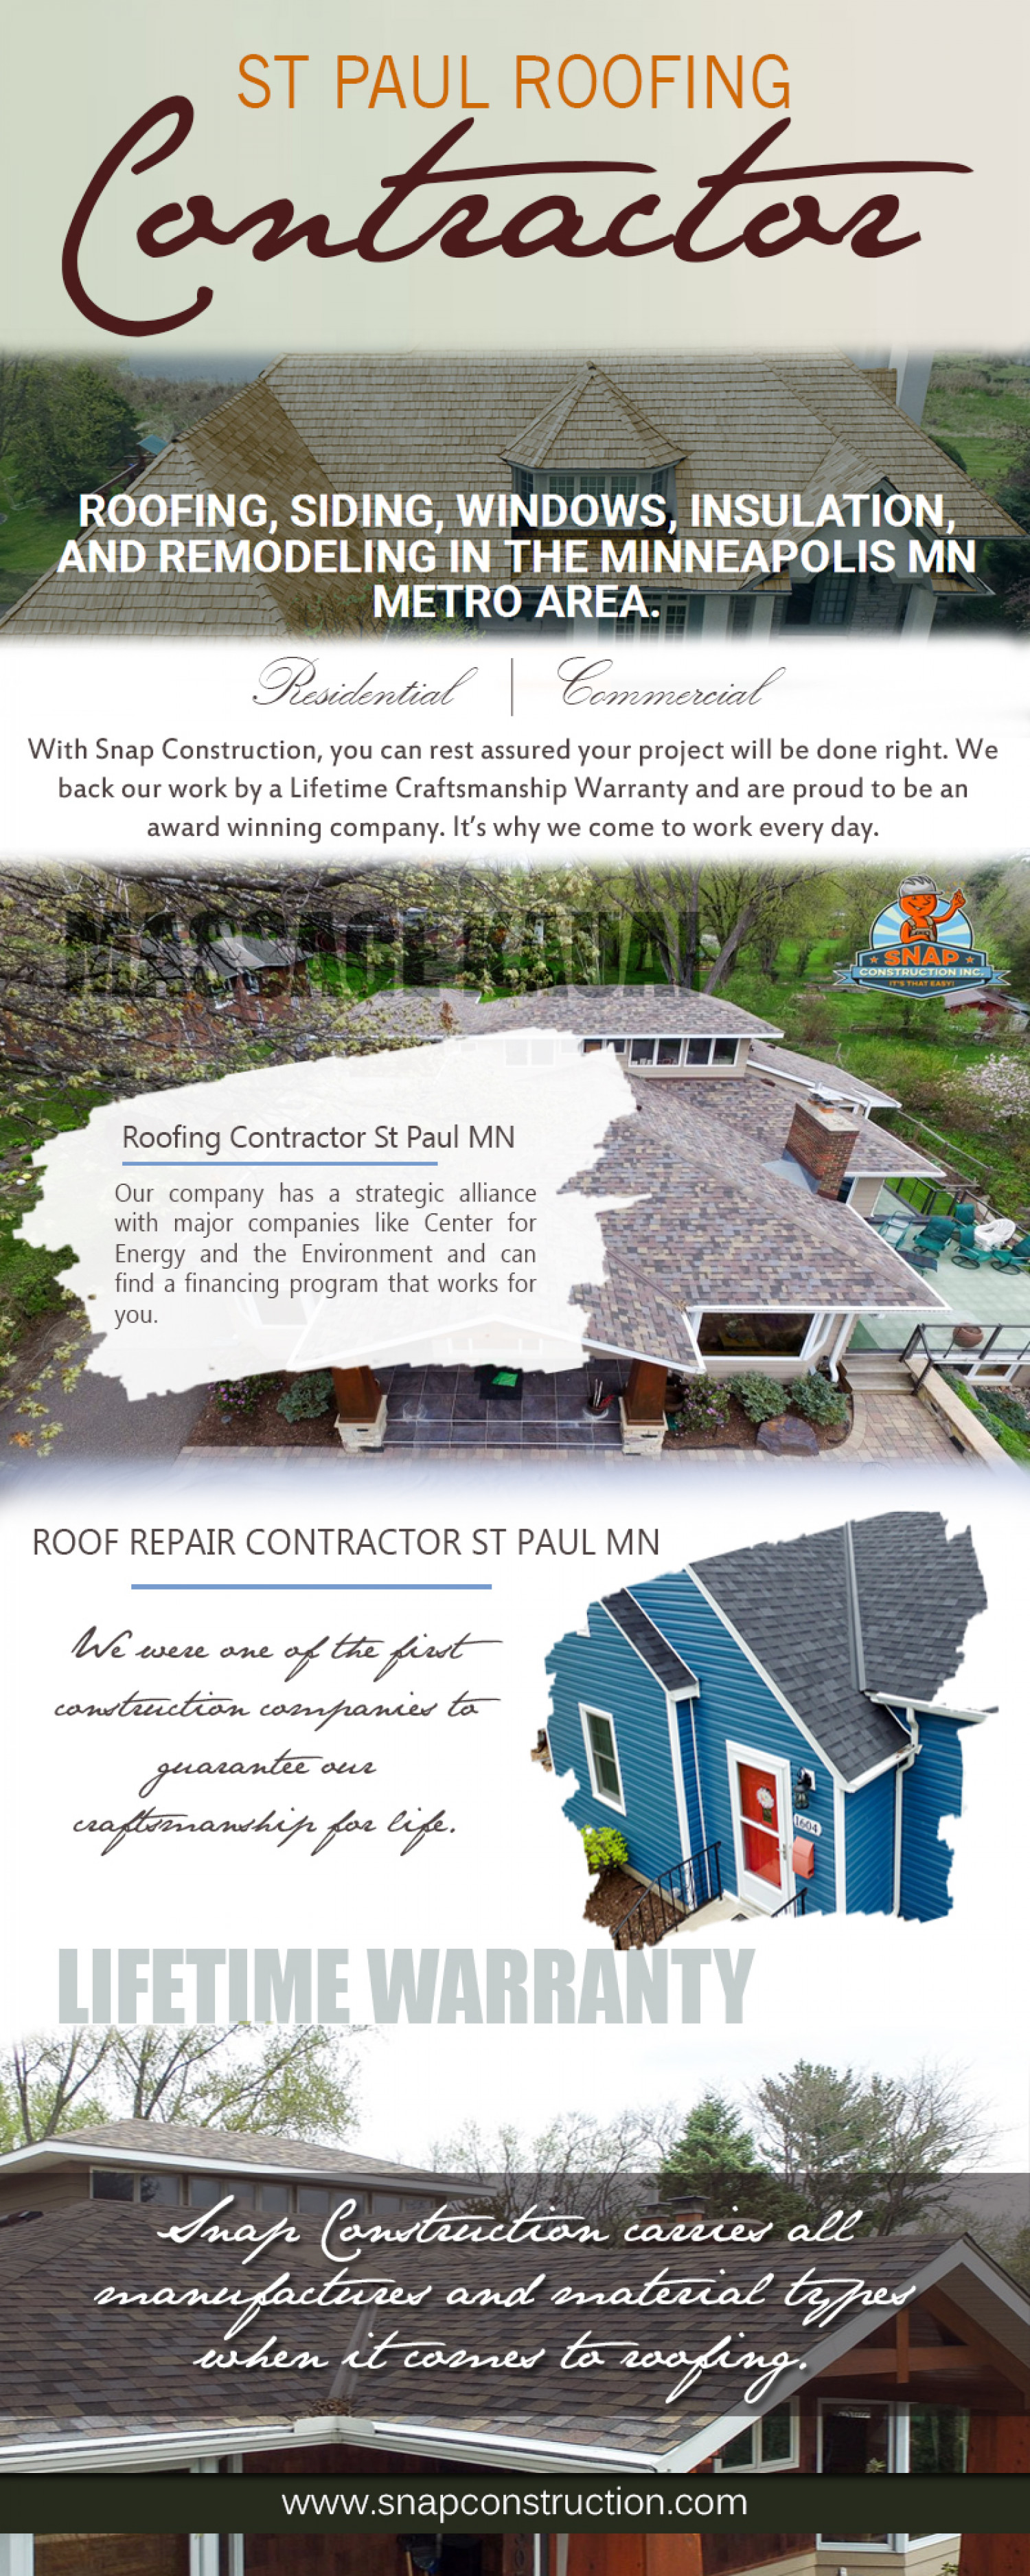 St Paul Roofing Contractor Infographic